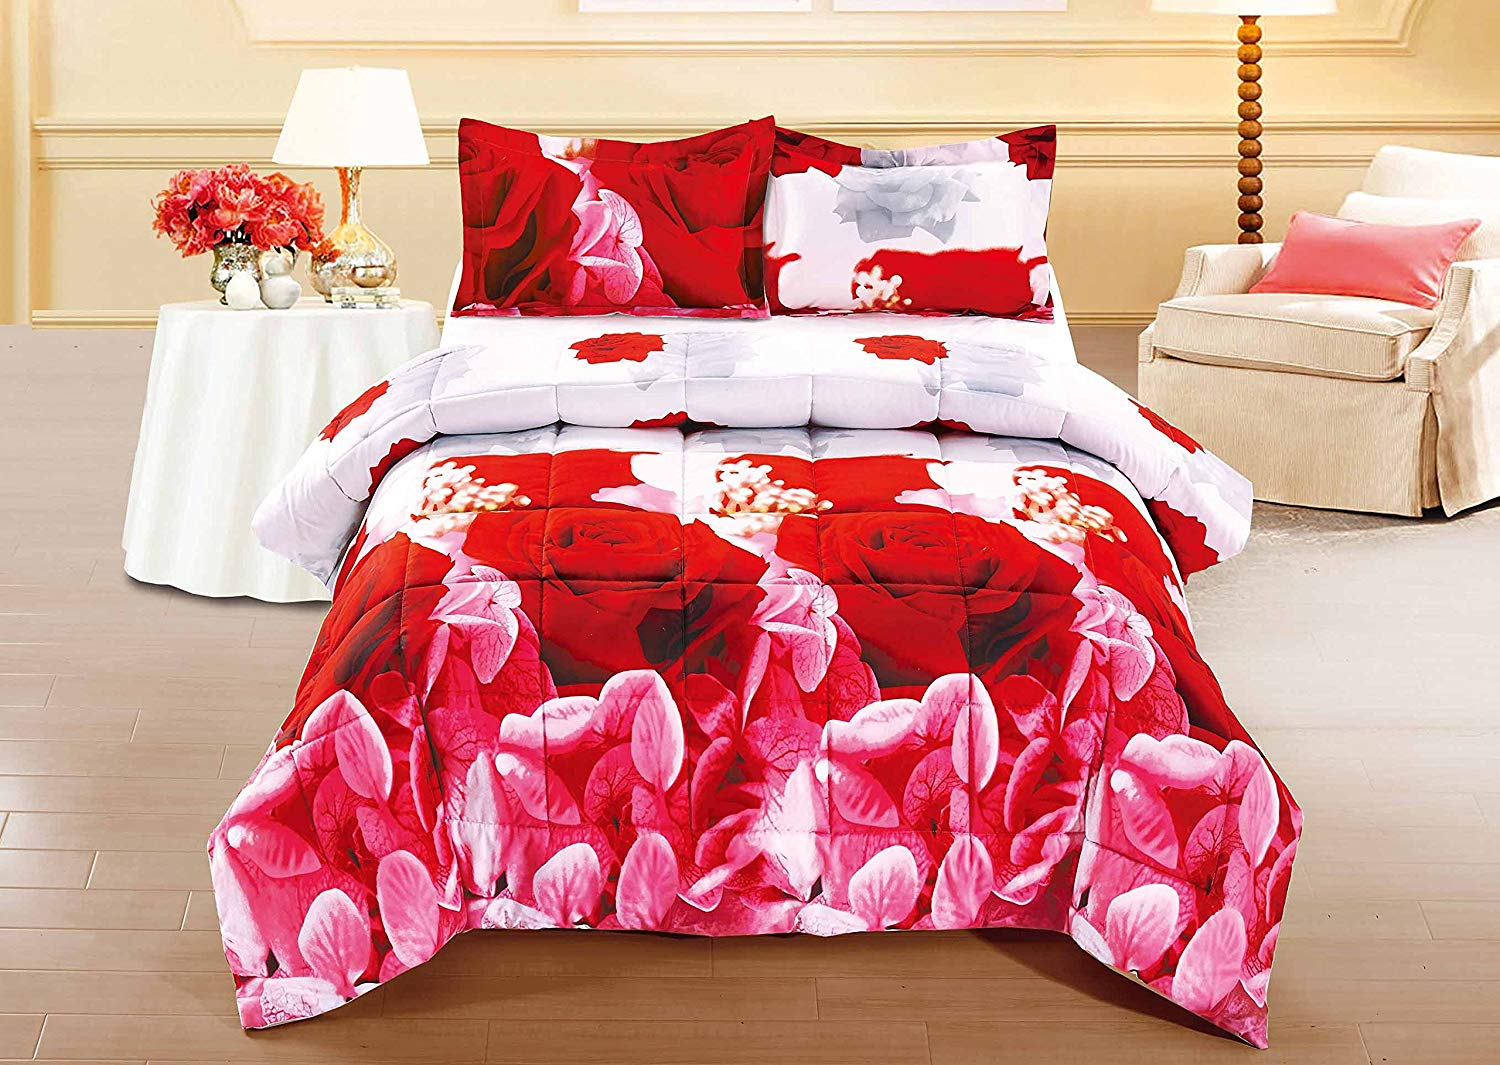 unique home 3 piece set lovely red rose clearance on walmart bedroom furniture clearance id=46906